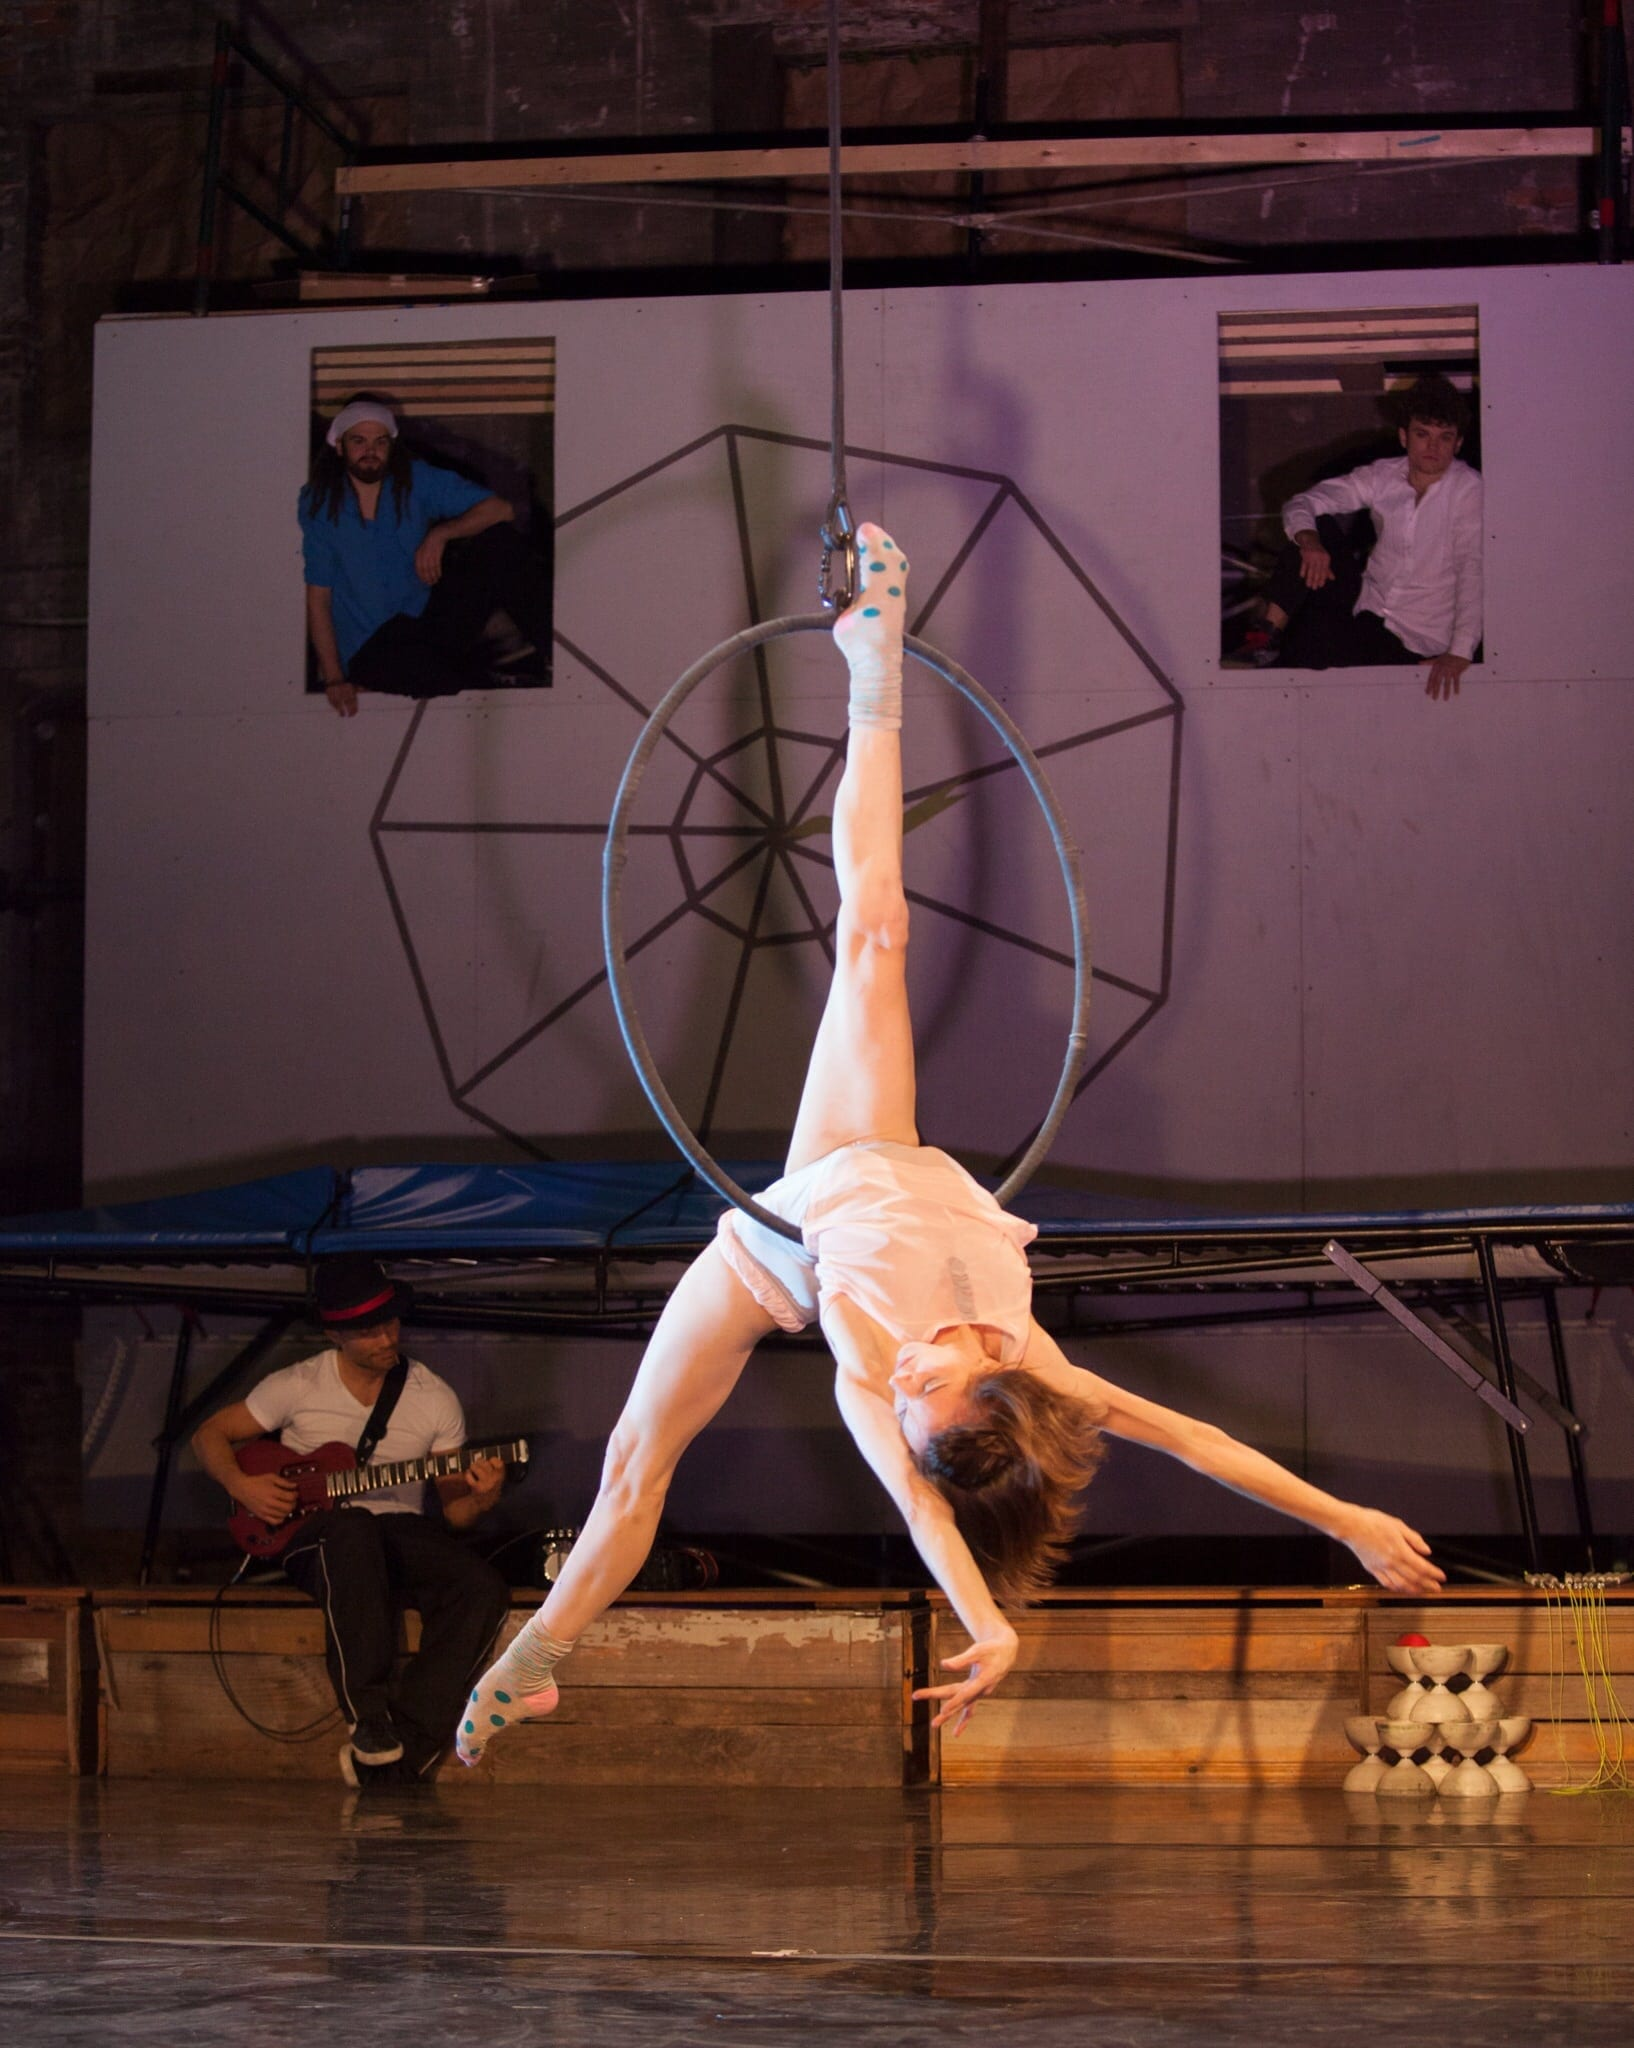 Meaghan Muller performs in the cerceau. (Photo by Charlie McCullers)